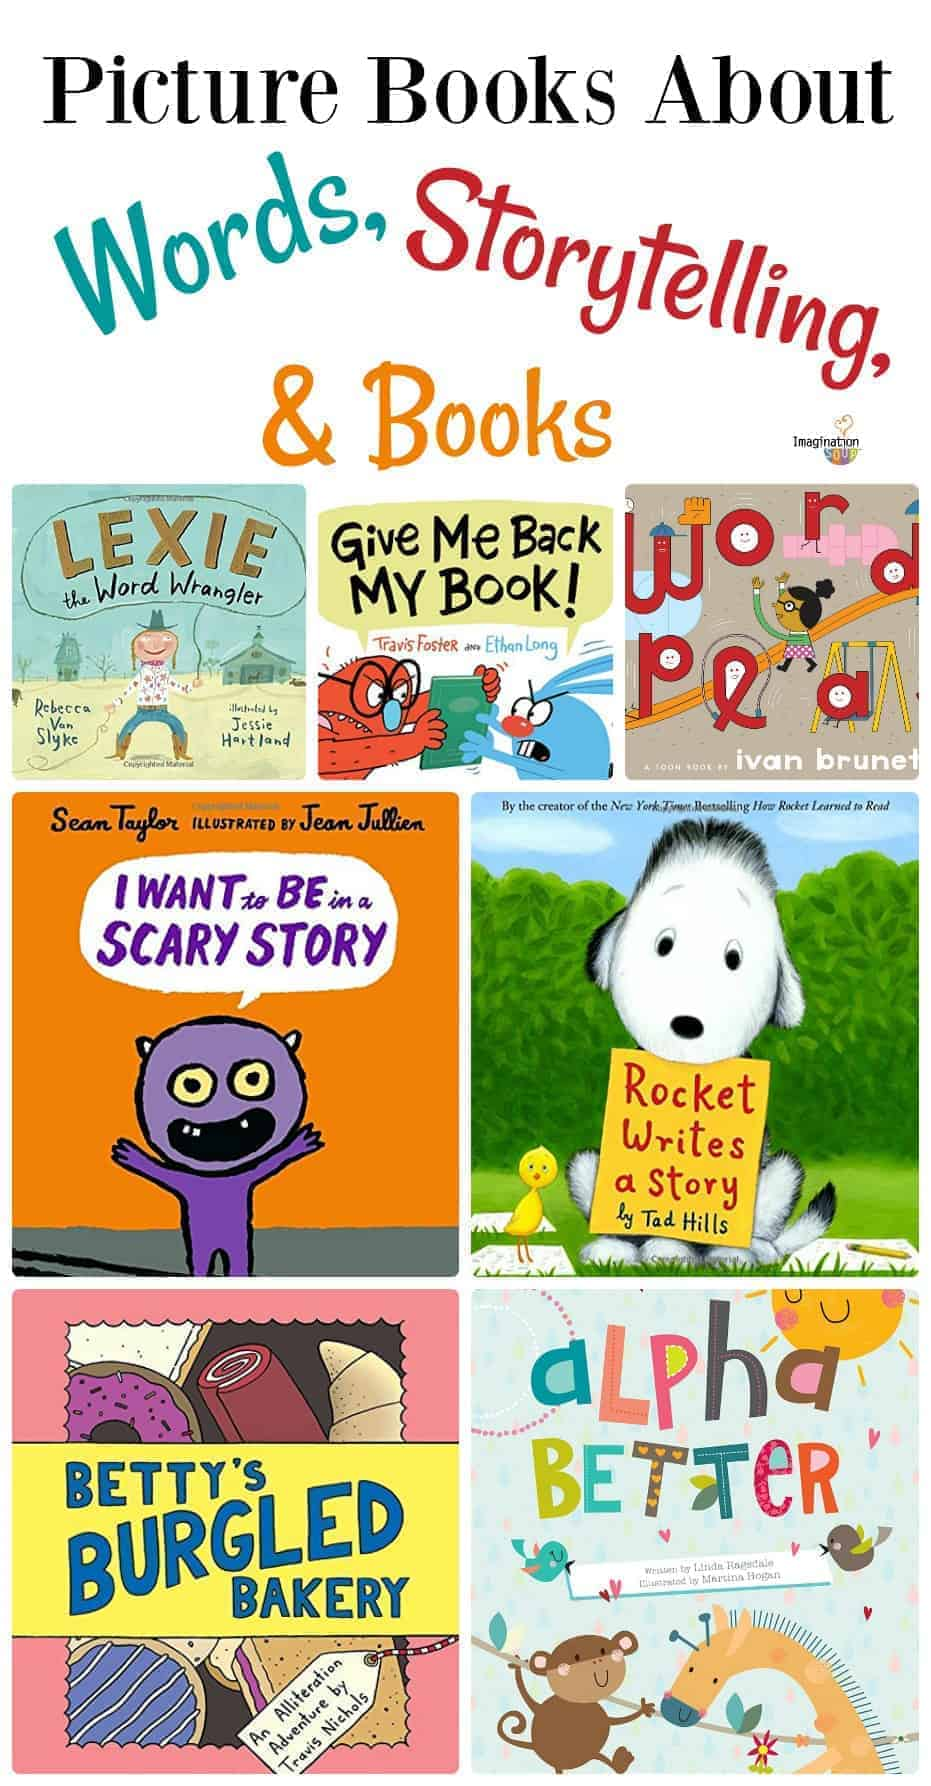 awesome picture books to help kids learn about words, storytelling, and books